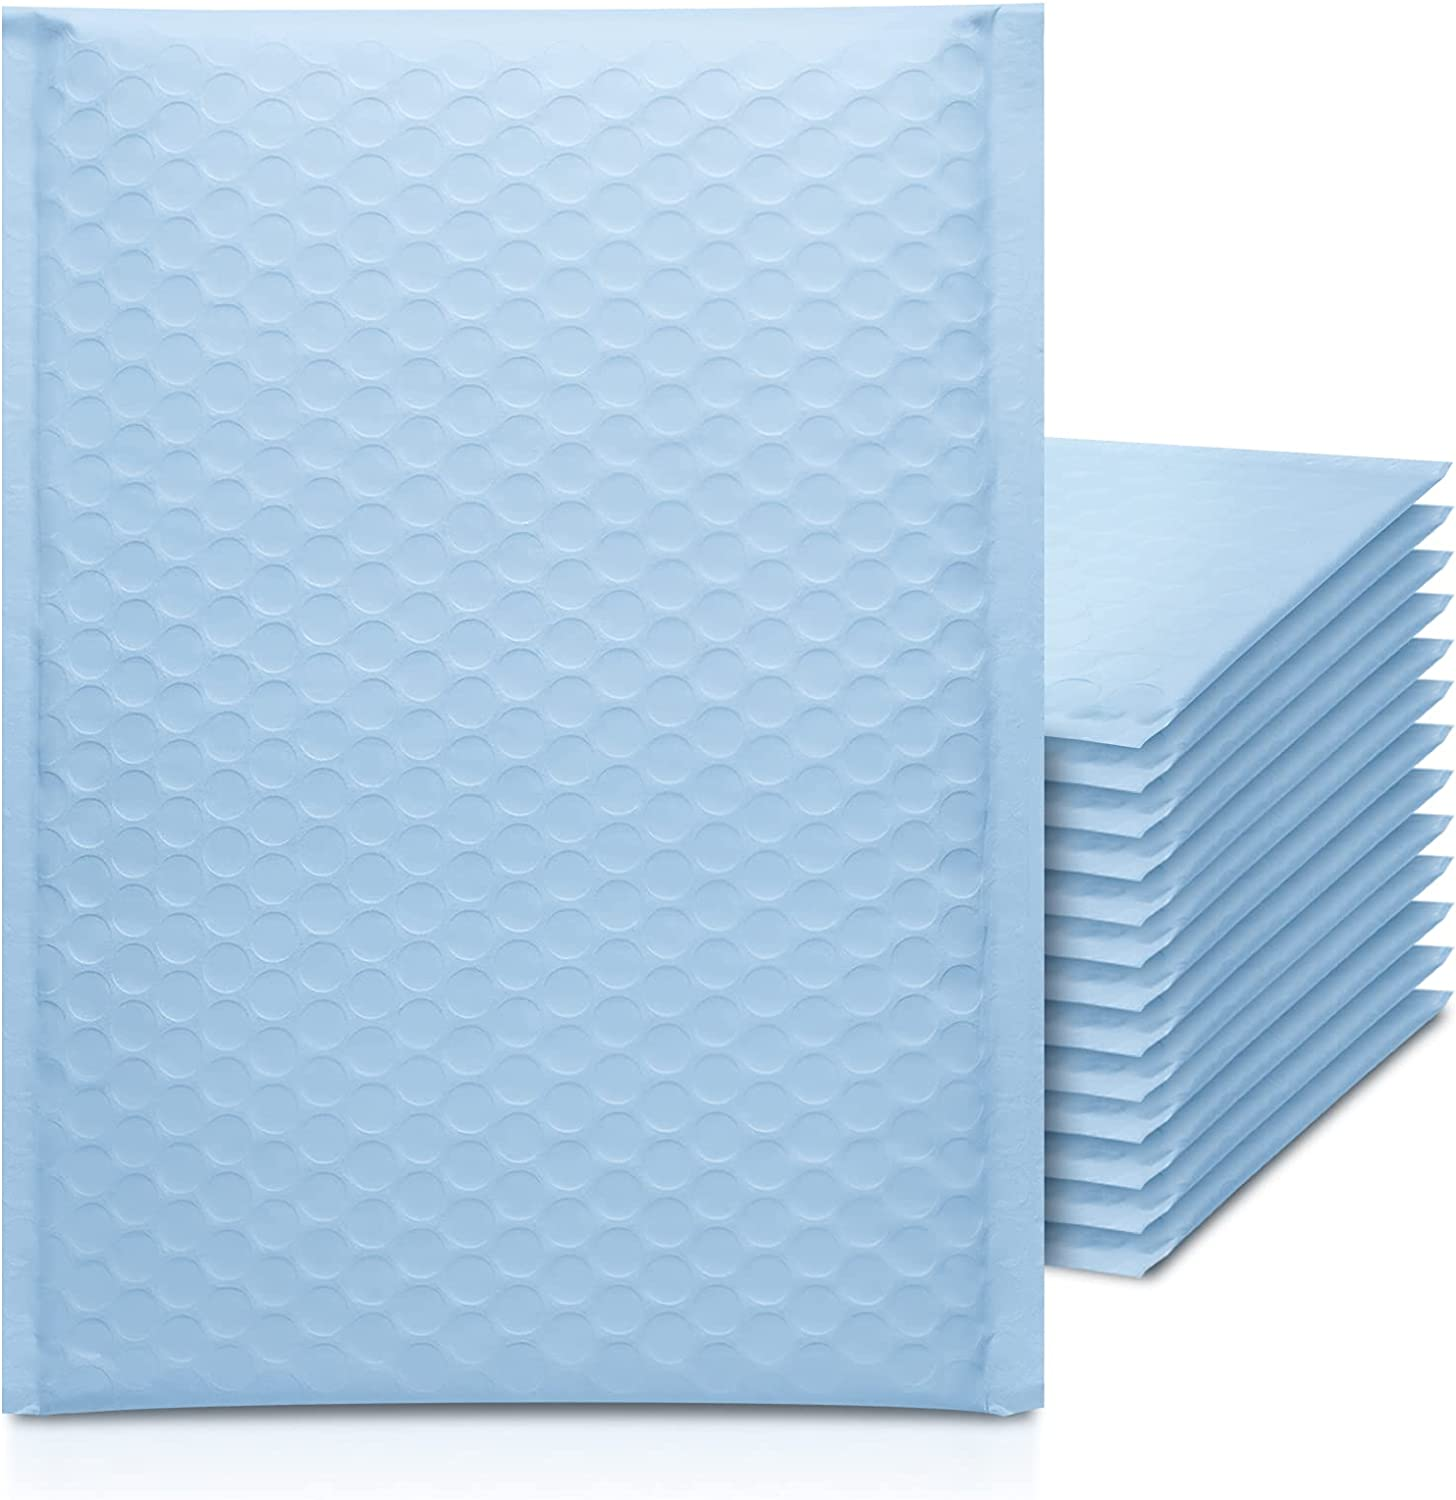 KeePack Washington Mall Selling rankings Poly Bubble Mailers 6x10 Inches 25 A5 Pack Size Paper P